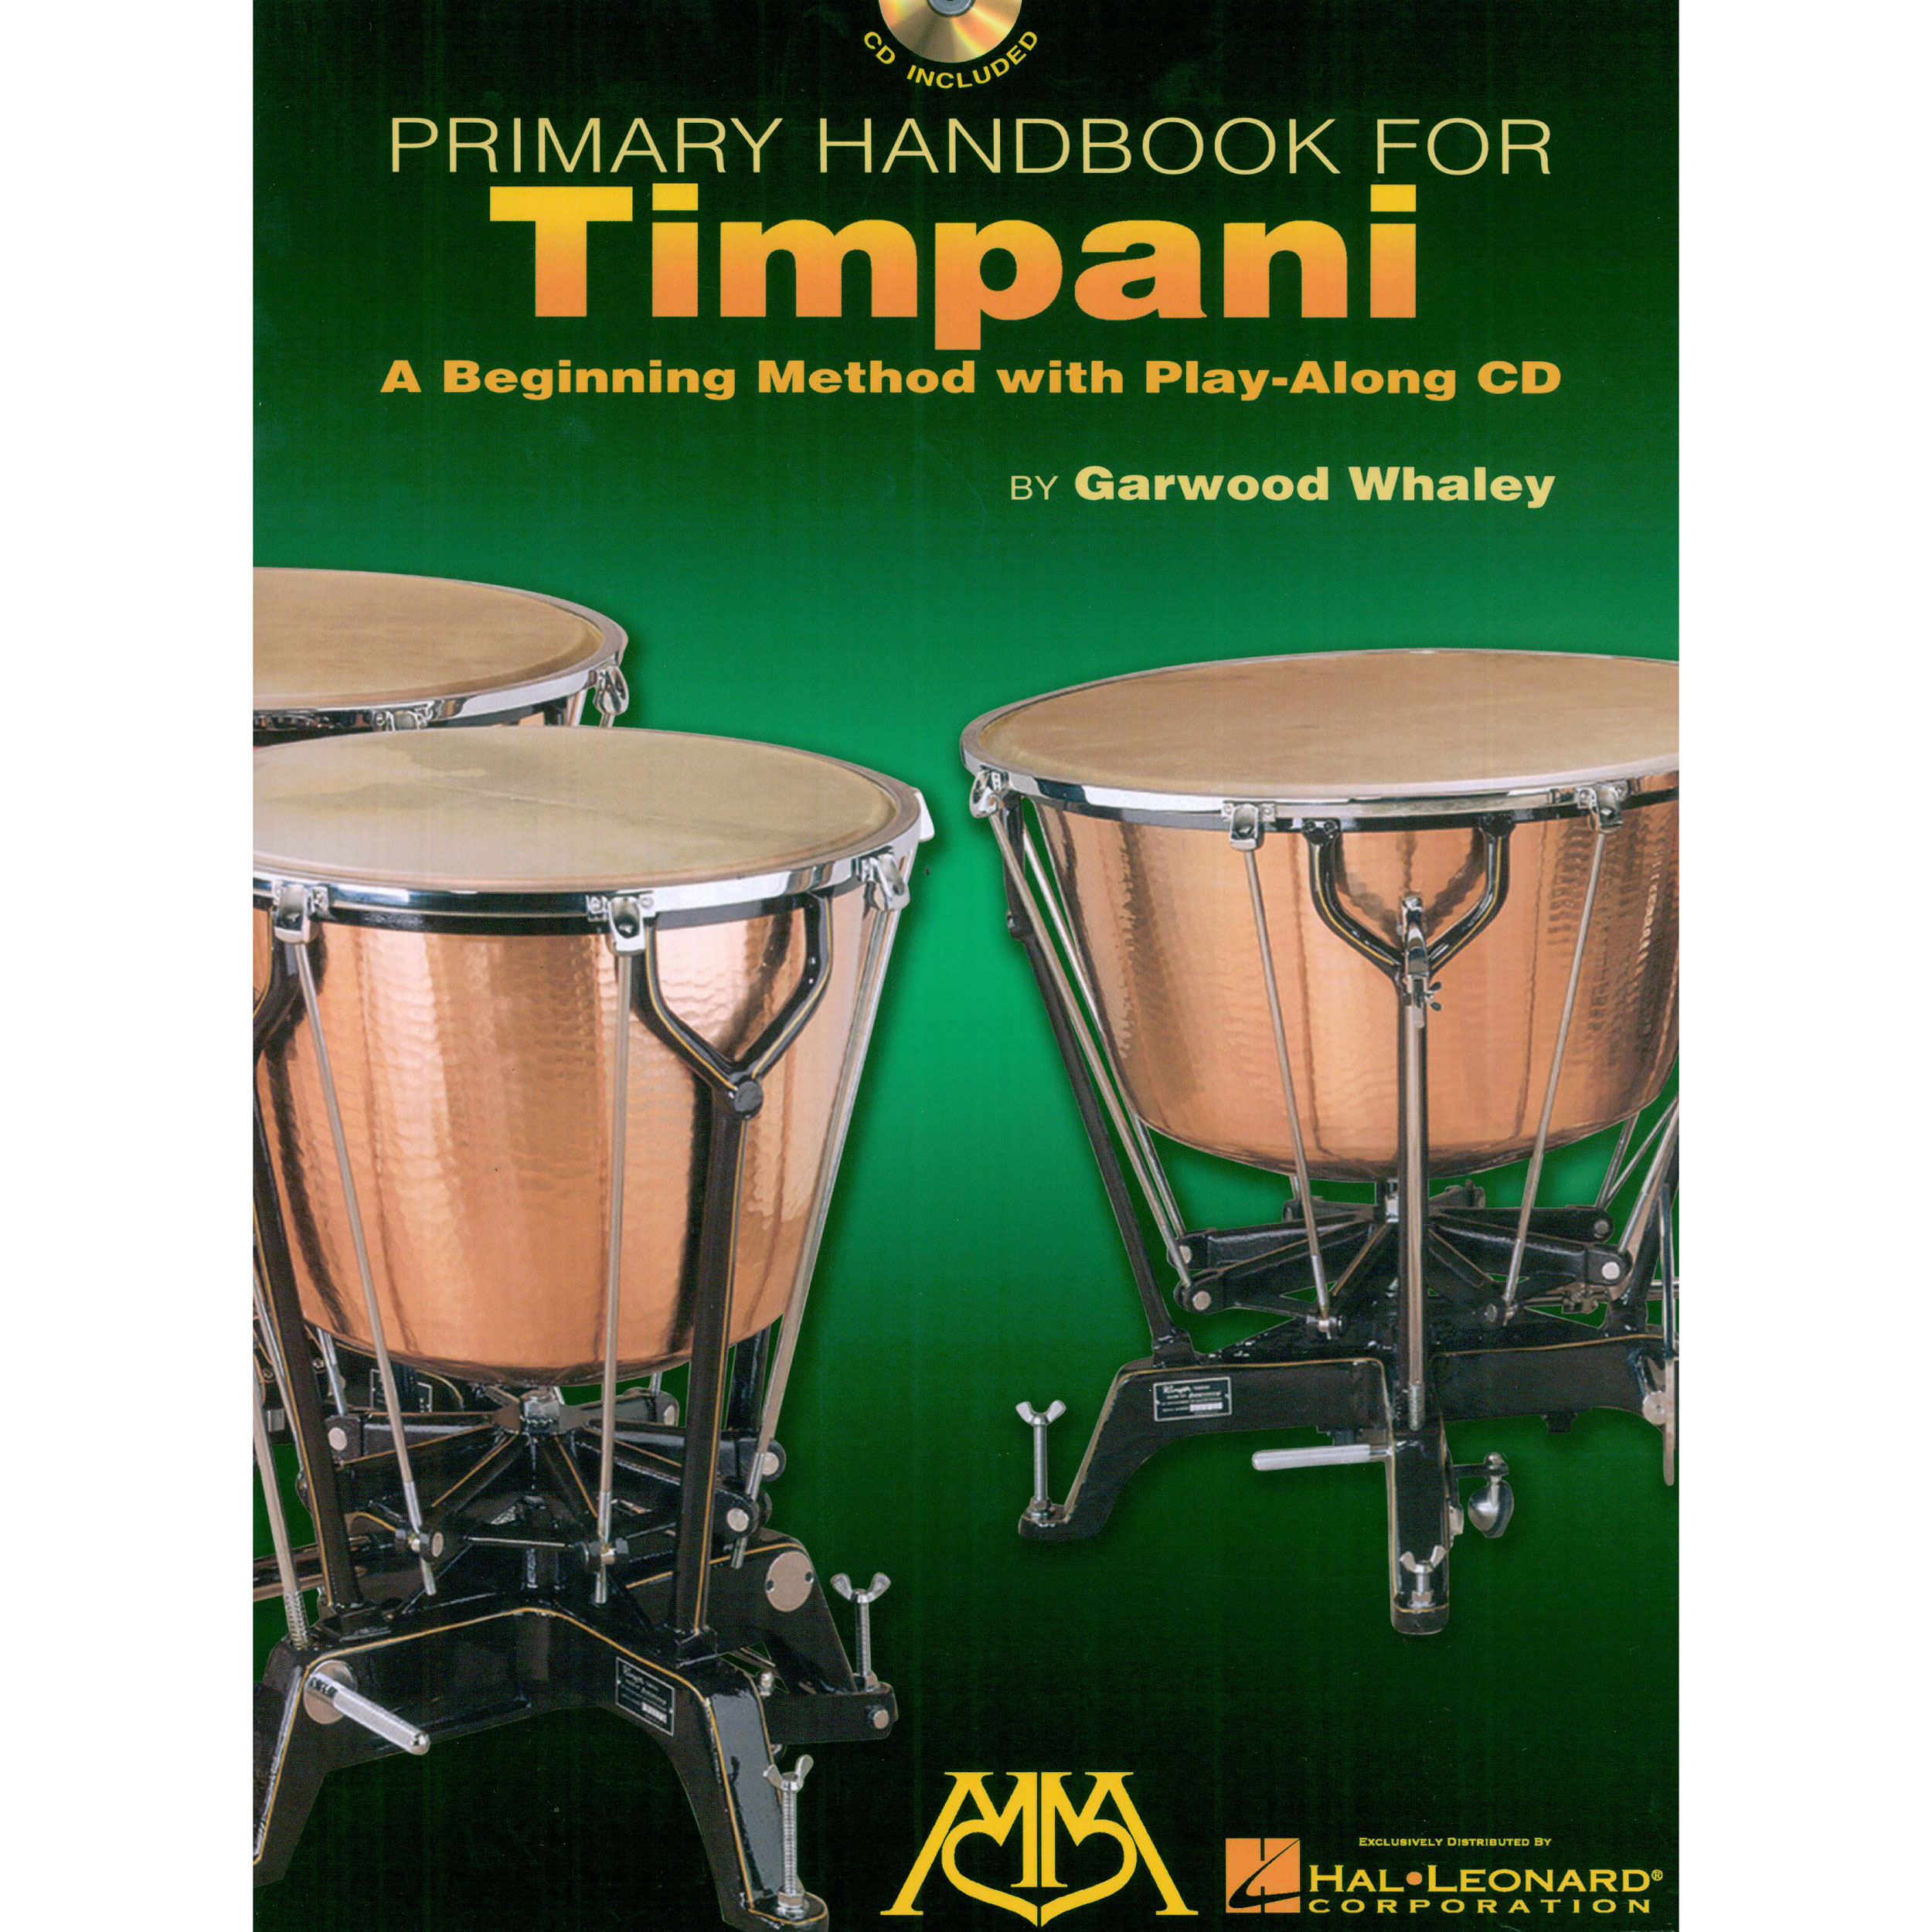 Primary Handbook for Timpani by Garwood Whaley